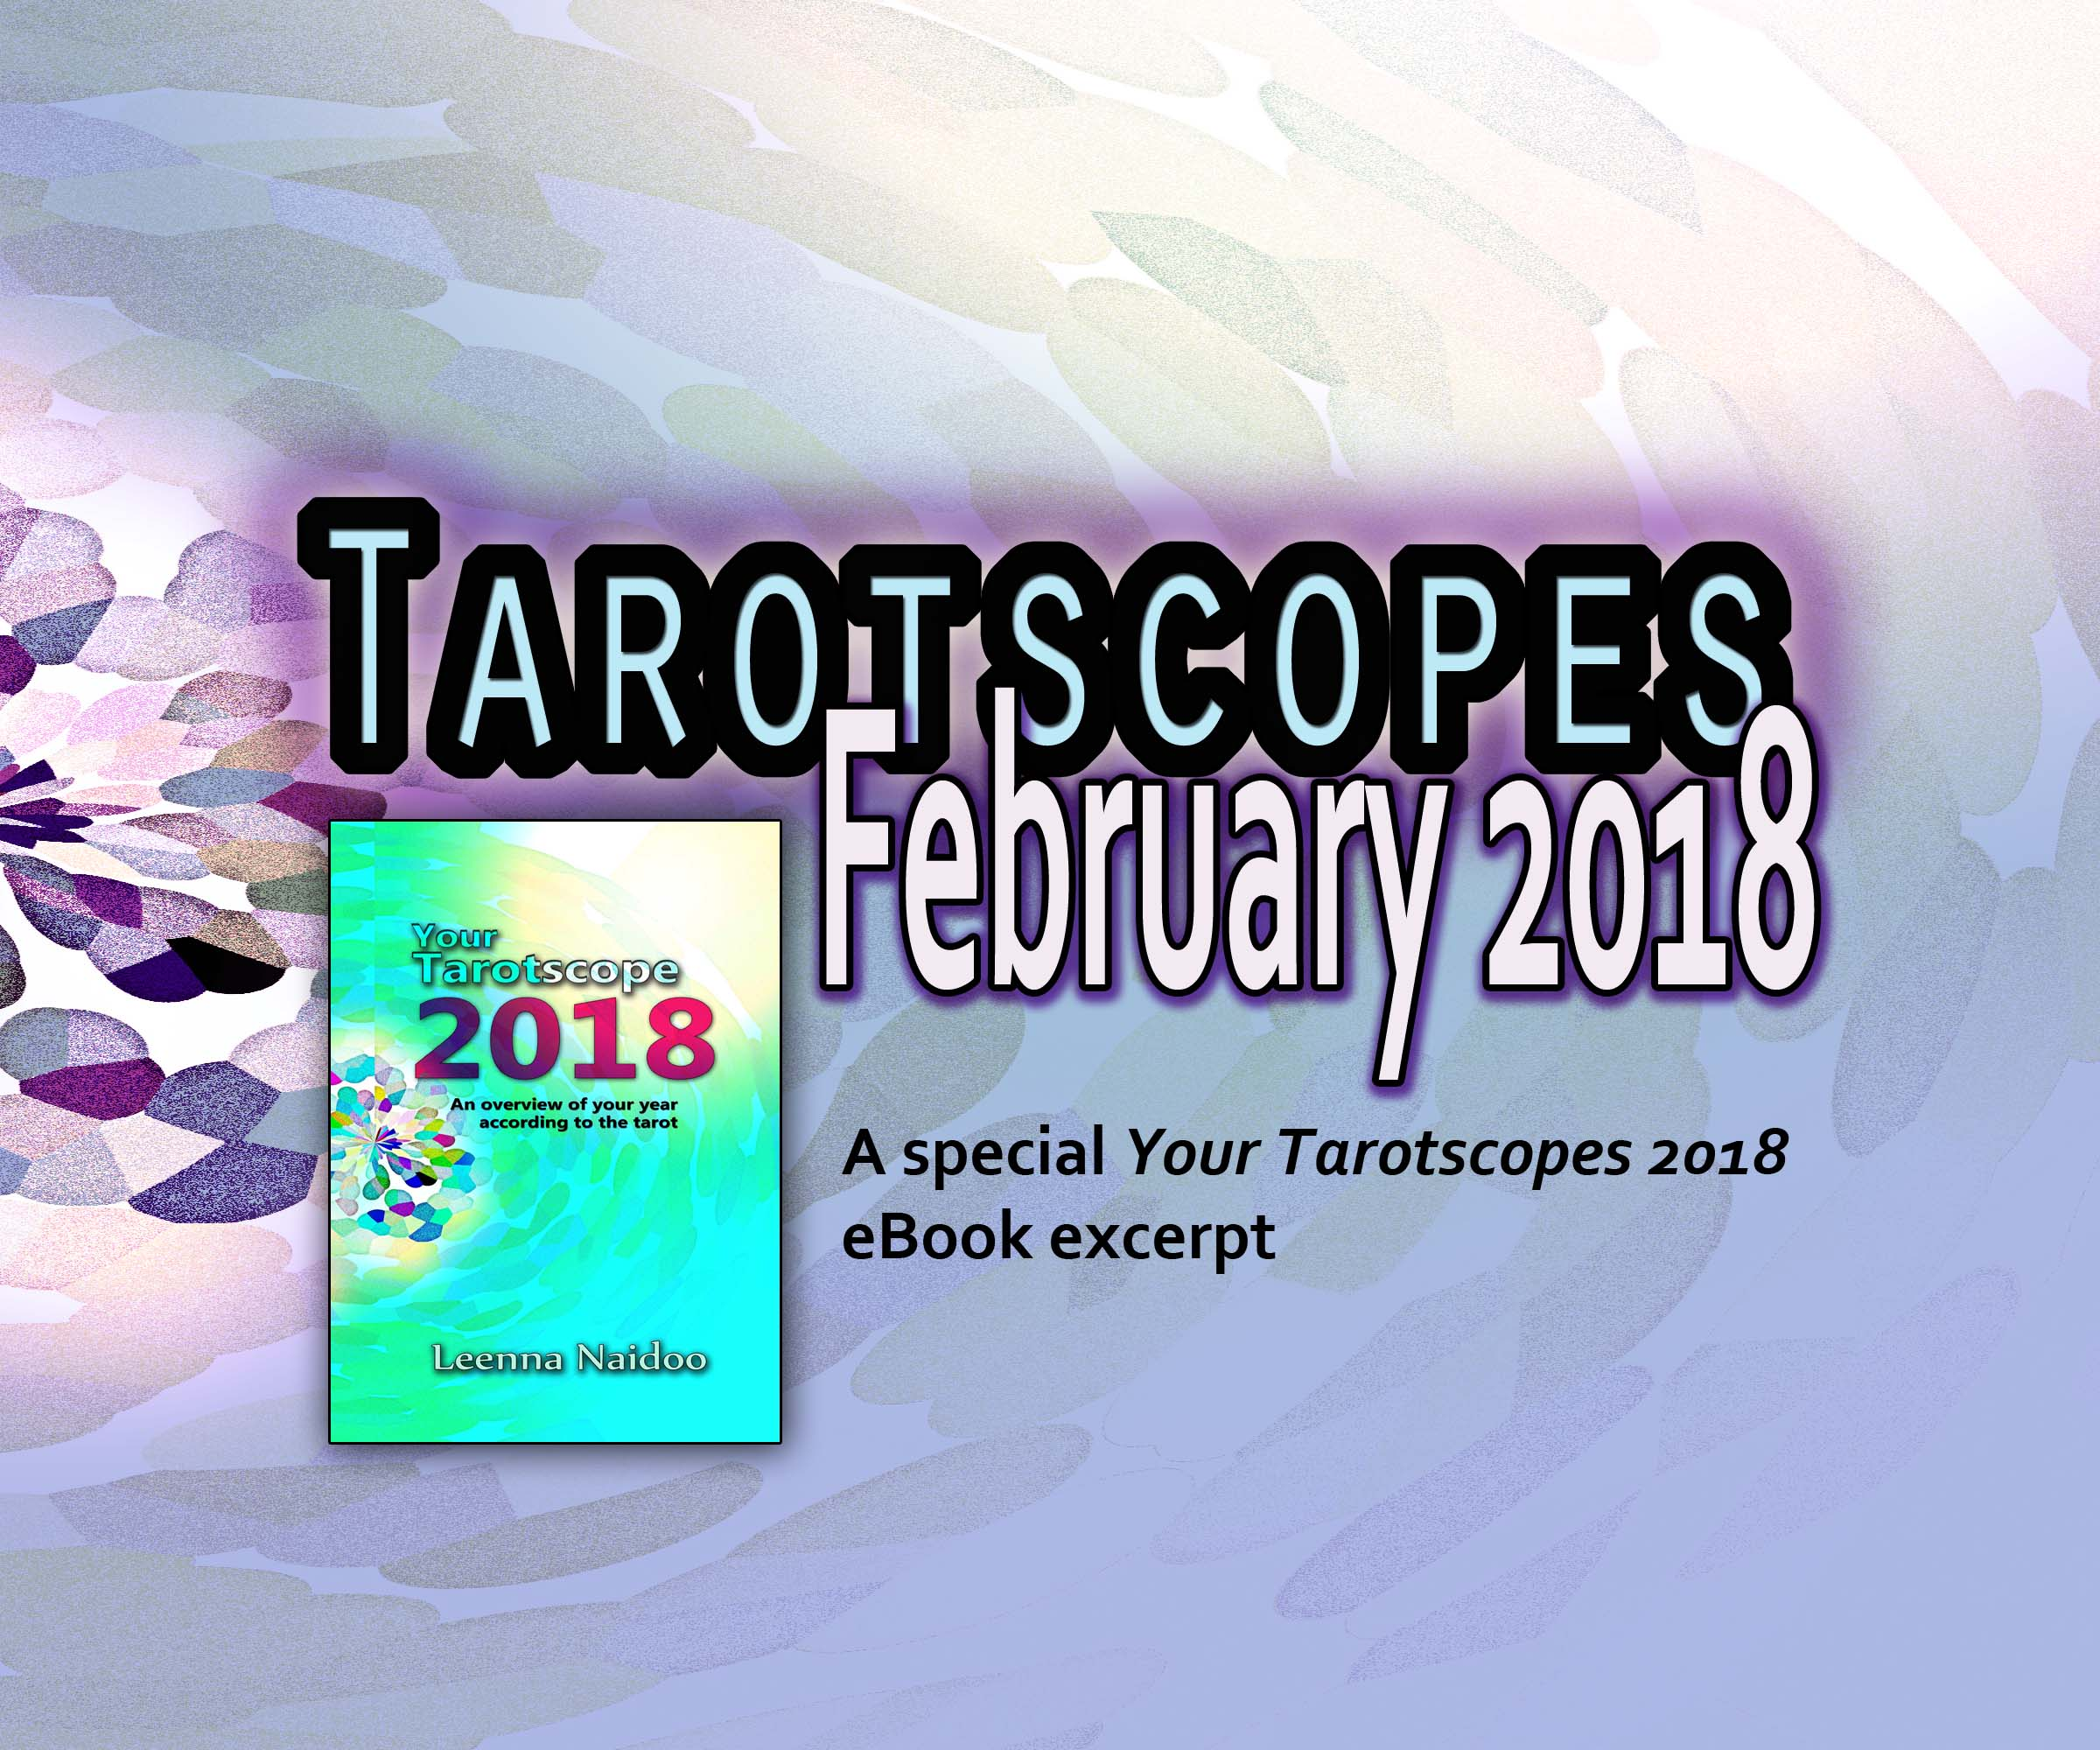 It's Here! Your February Tarotscope